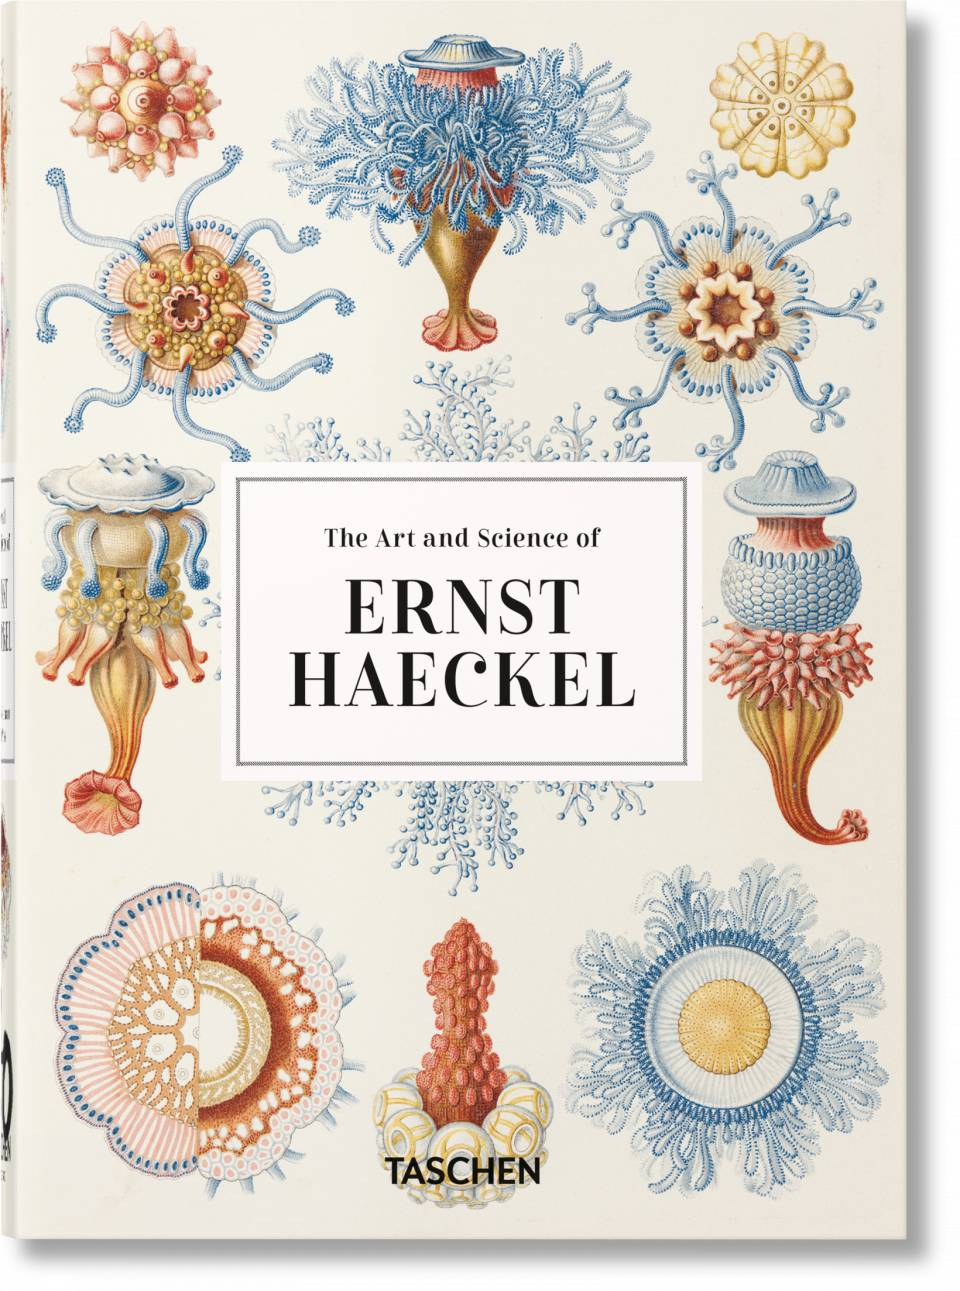 The Art and Science of Ernst Haeckel. 40th Anniversary Edition - image 1